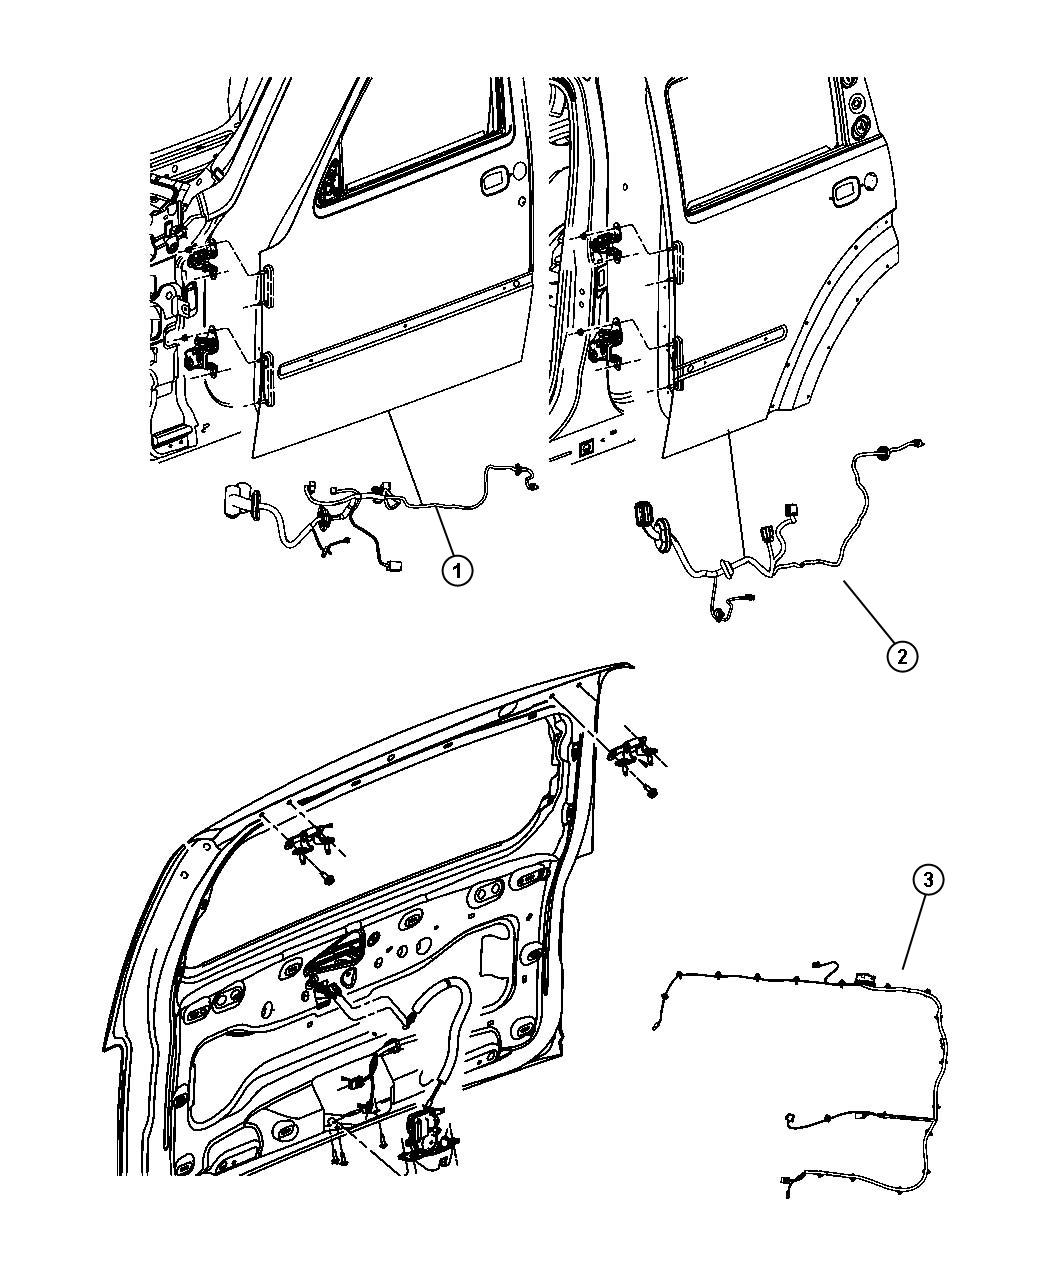 2011 Jeep Liberty Wiring. Rear door. [[6 speakers, 4